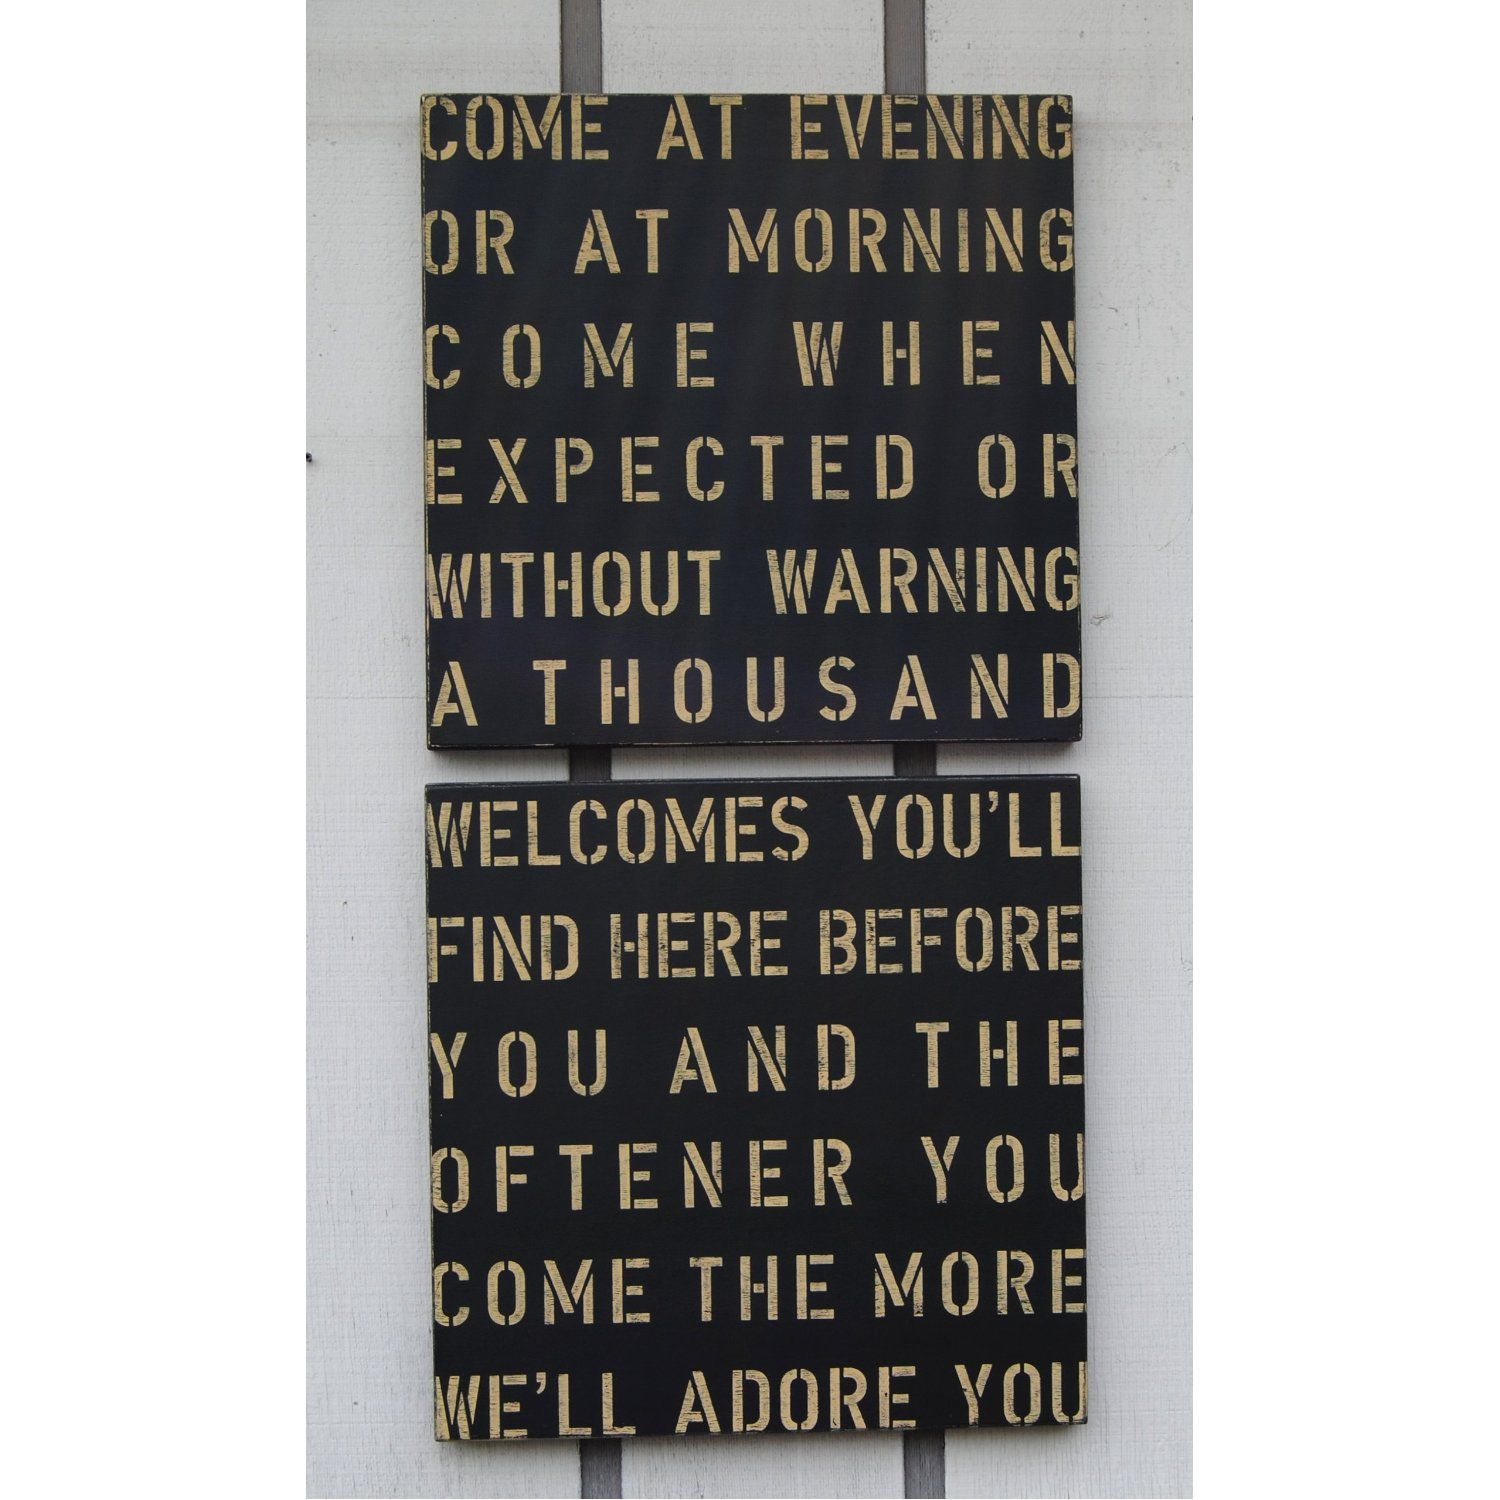 I want this in my home so all know they are welcome